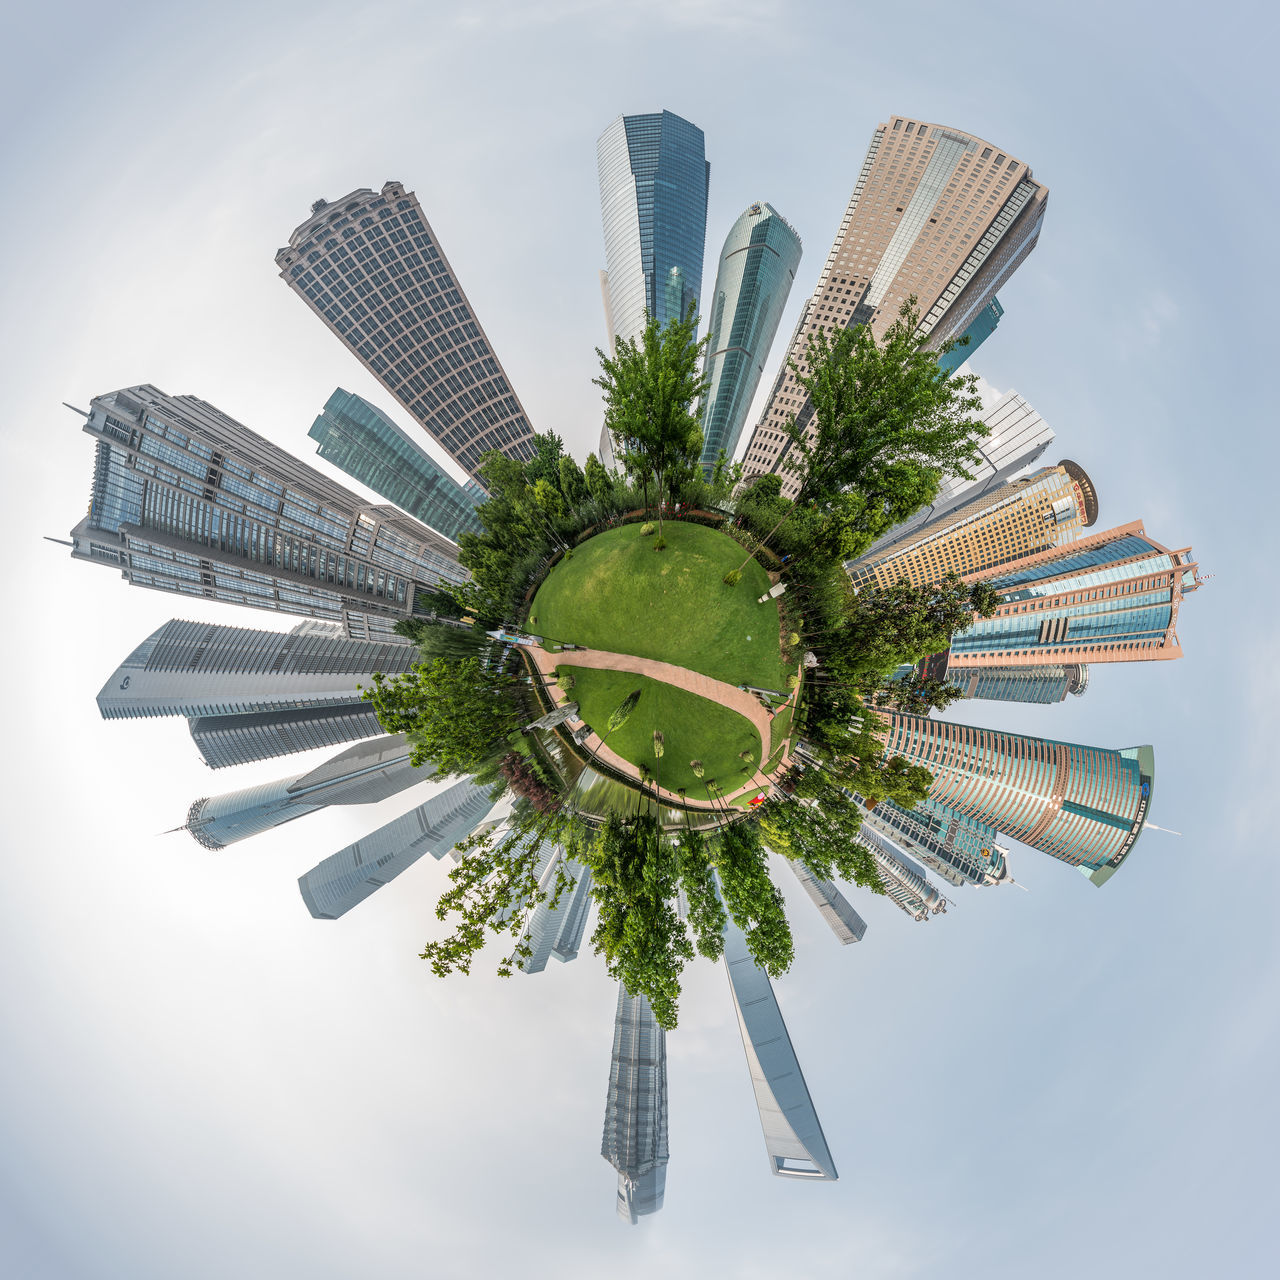 Shanghai skyscrapers Architecture ASIA Buildings China City Panorama Shanghai Skyline Skyscrapers Small Planet Nikon D810 1424mm Nikonphotography Travel Destinations Travel Photography Creative Square Nikon The Bund